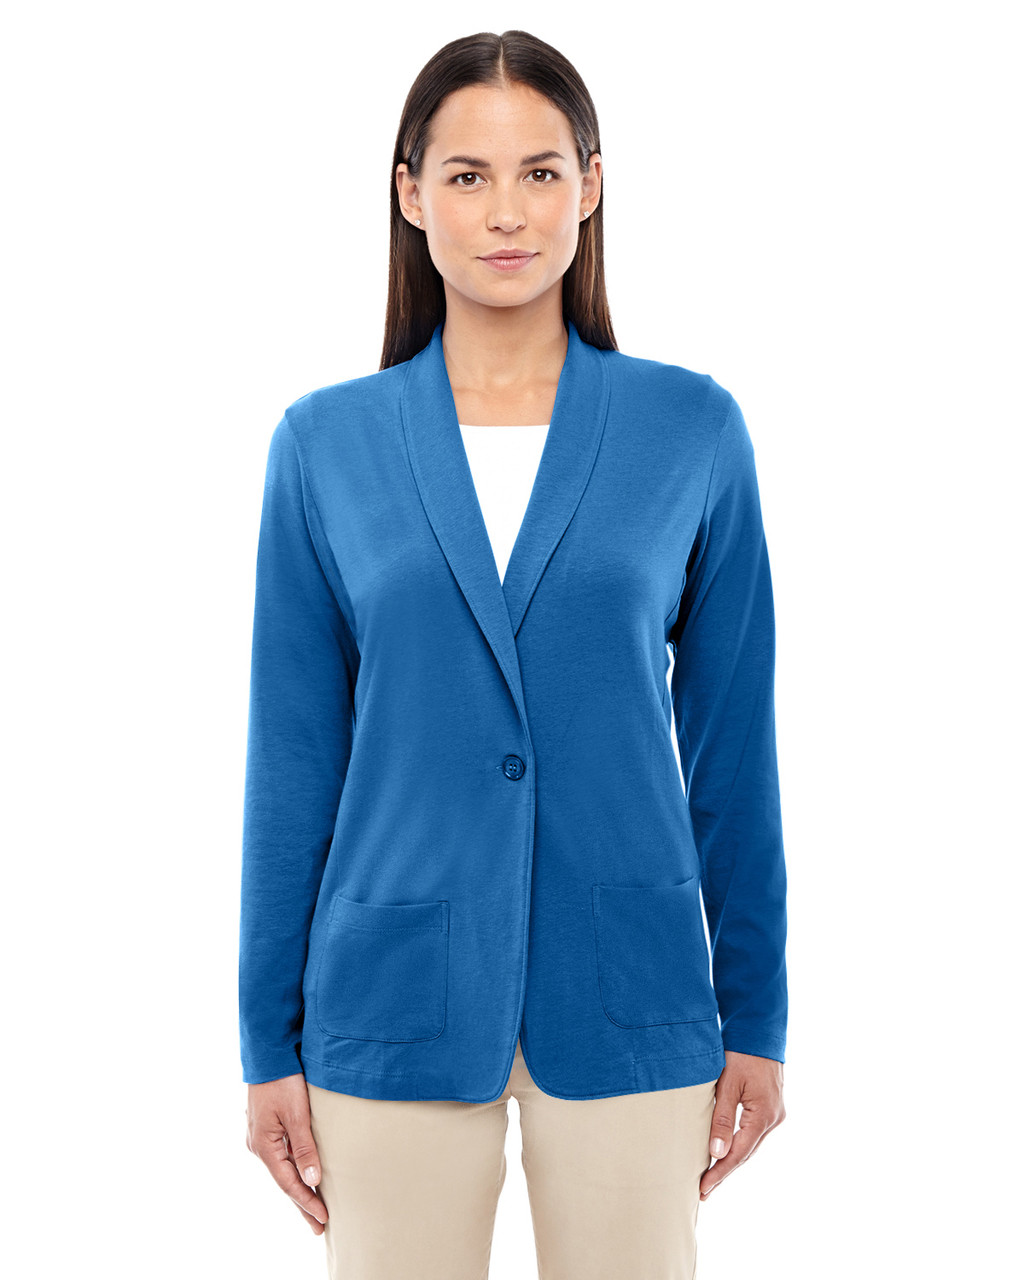 French Blue - DP462W Devon & Jones Ladies' Perfect Fit Shawl Collar Cardigan